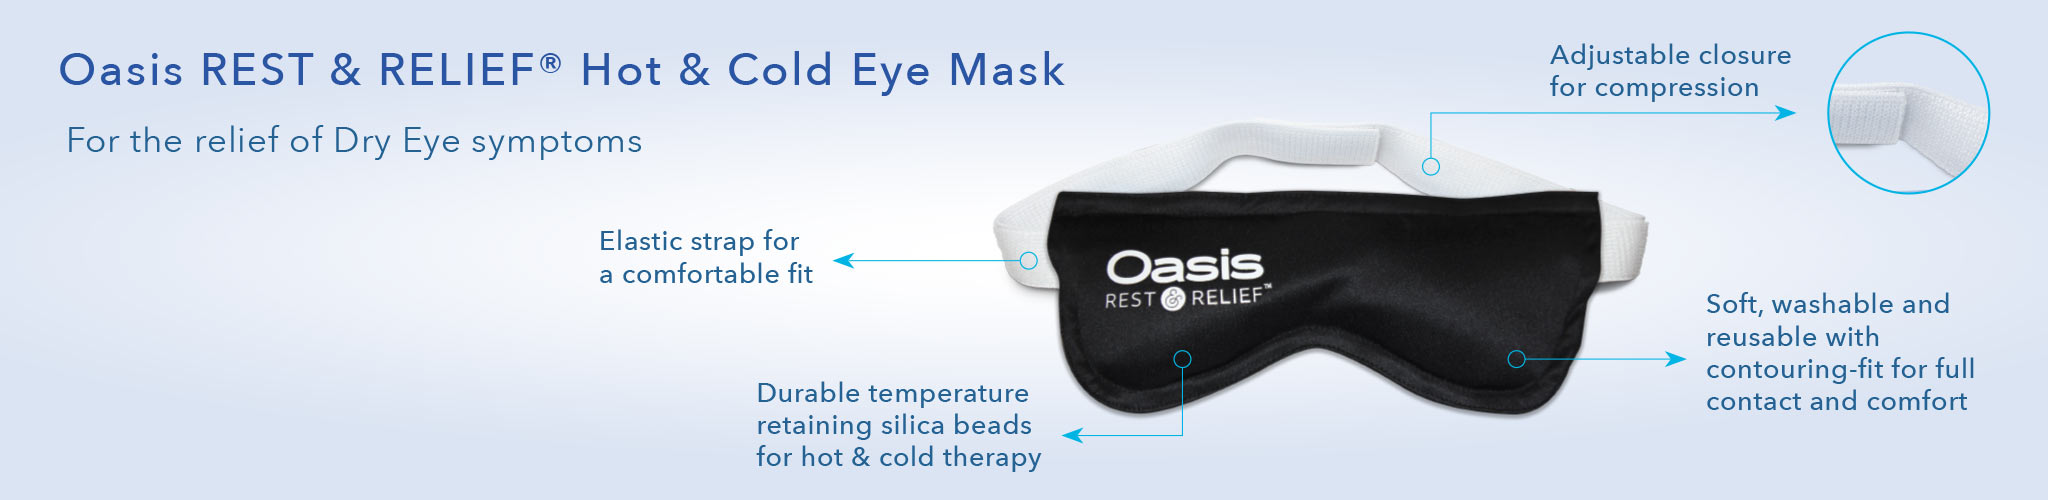 Oasis REST & RELIEF product banner